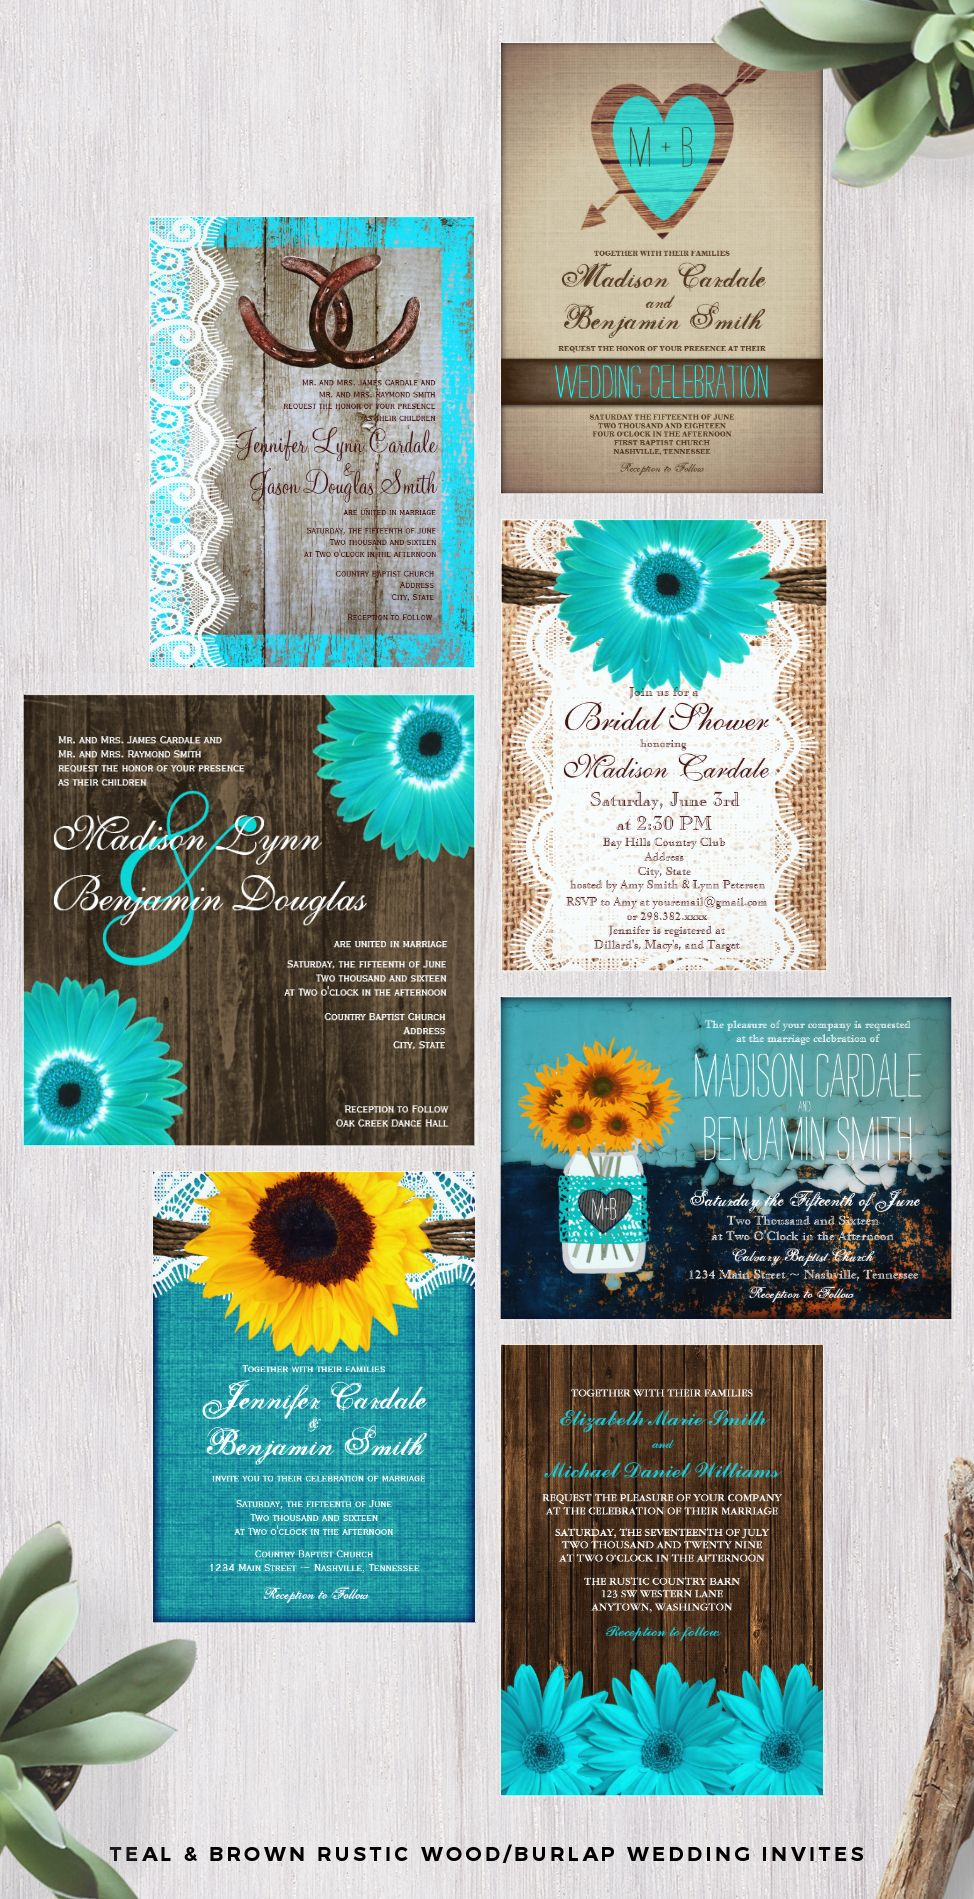 Teal Aqua Turquoise And Brown Rustic Wood Burlap Wedding Invitations